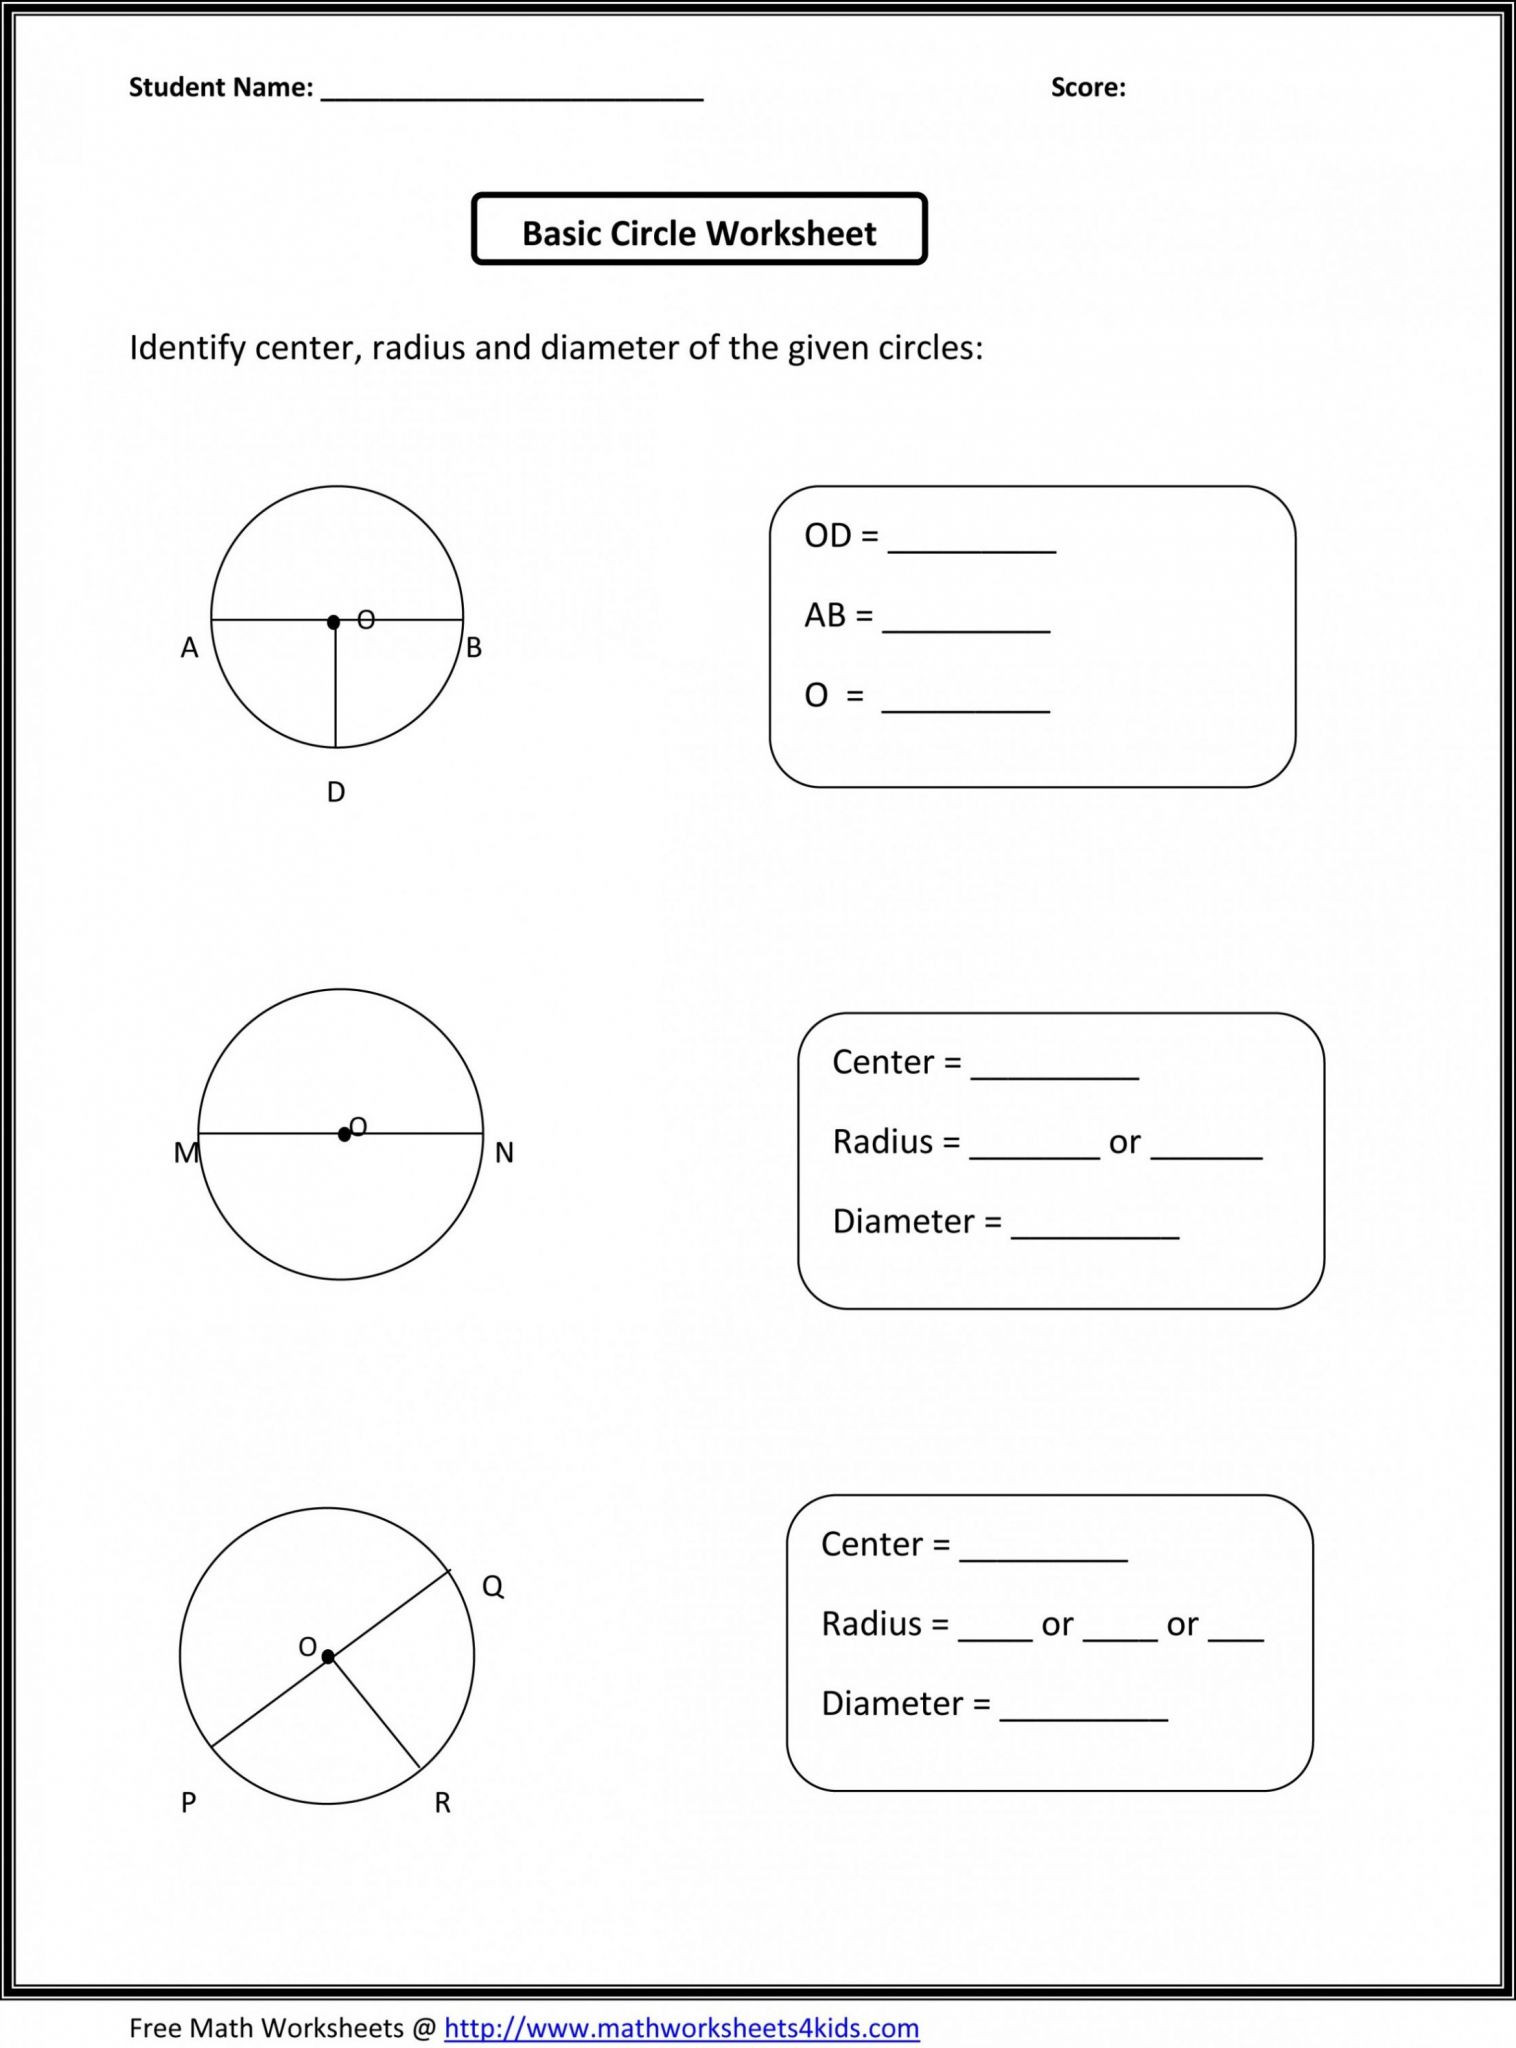 Tape Diagram Worksheet 6th Grade More with Tape Diagrams Worksheet